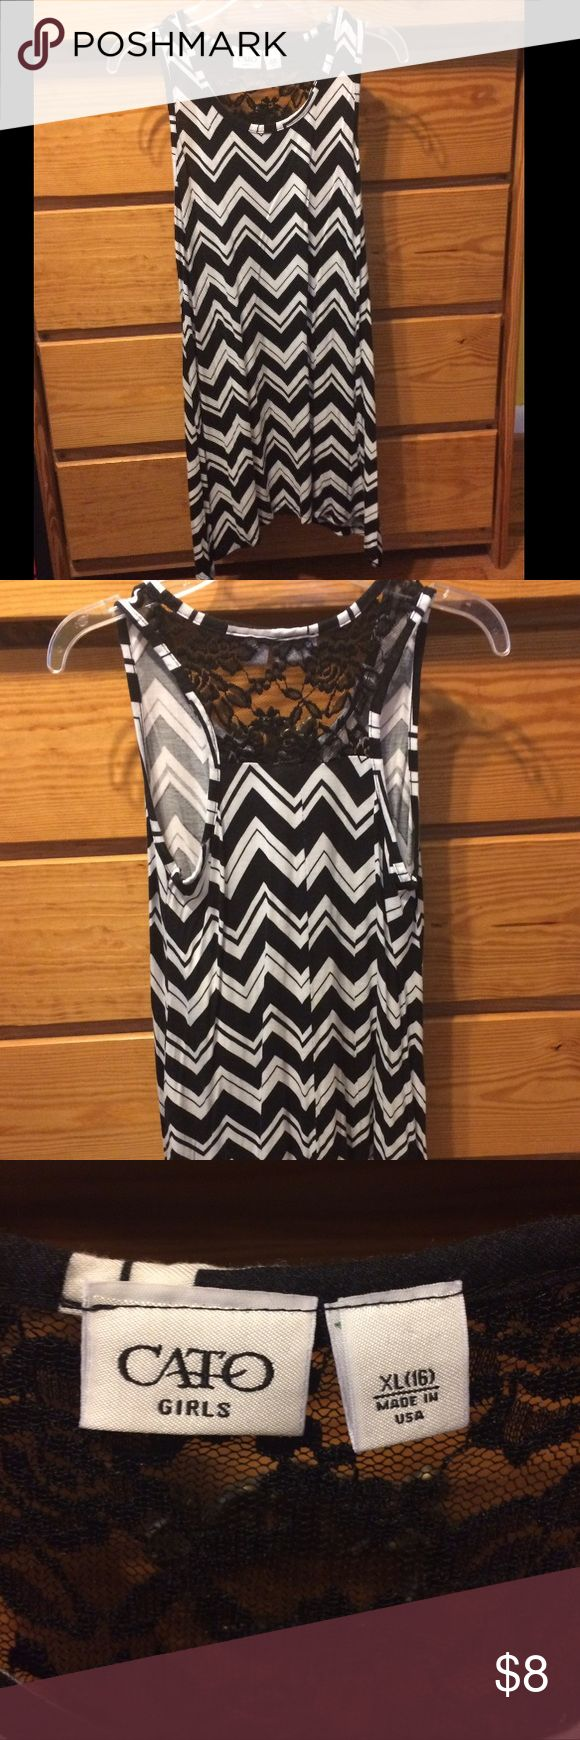 Chevron tank top Super cute tank top!! 😀 sadly, it's a little to tight for my liking. 😕 it's longer than a normal shirt, goes past the bum, and the sides go down longer. Black floral lace on the back at the top. Hardly worn. No flaws that I know of!! GIRLS SIZE!! Cato Tops Tank Tops